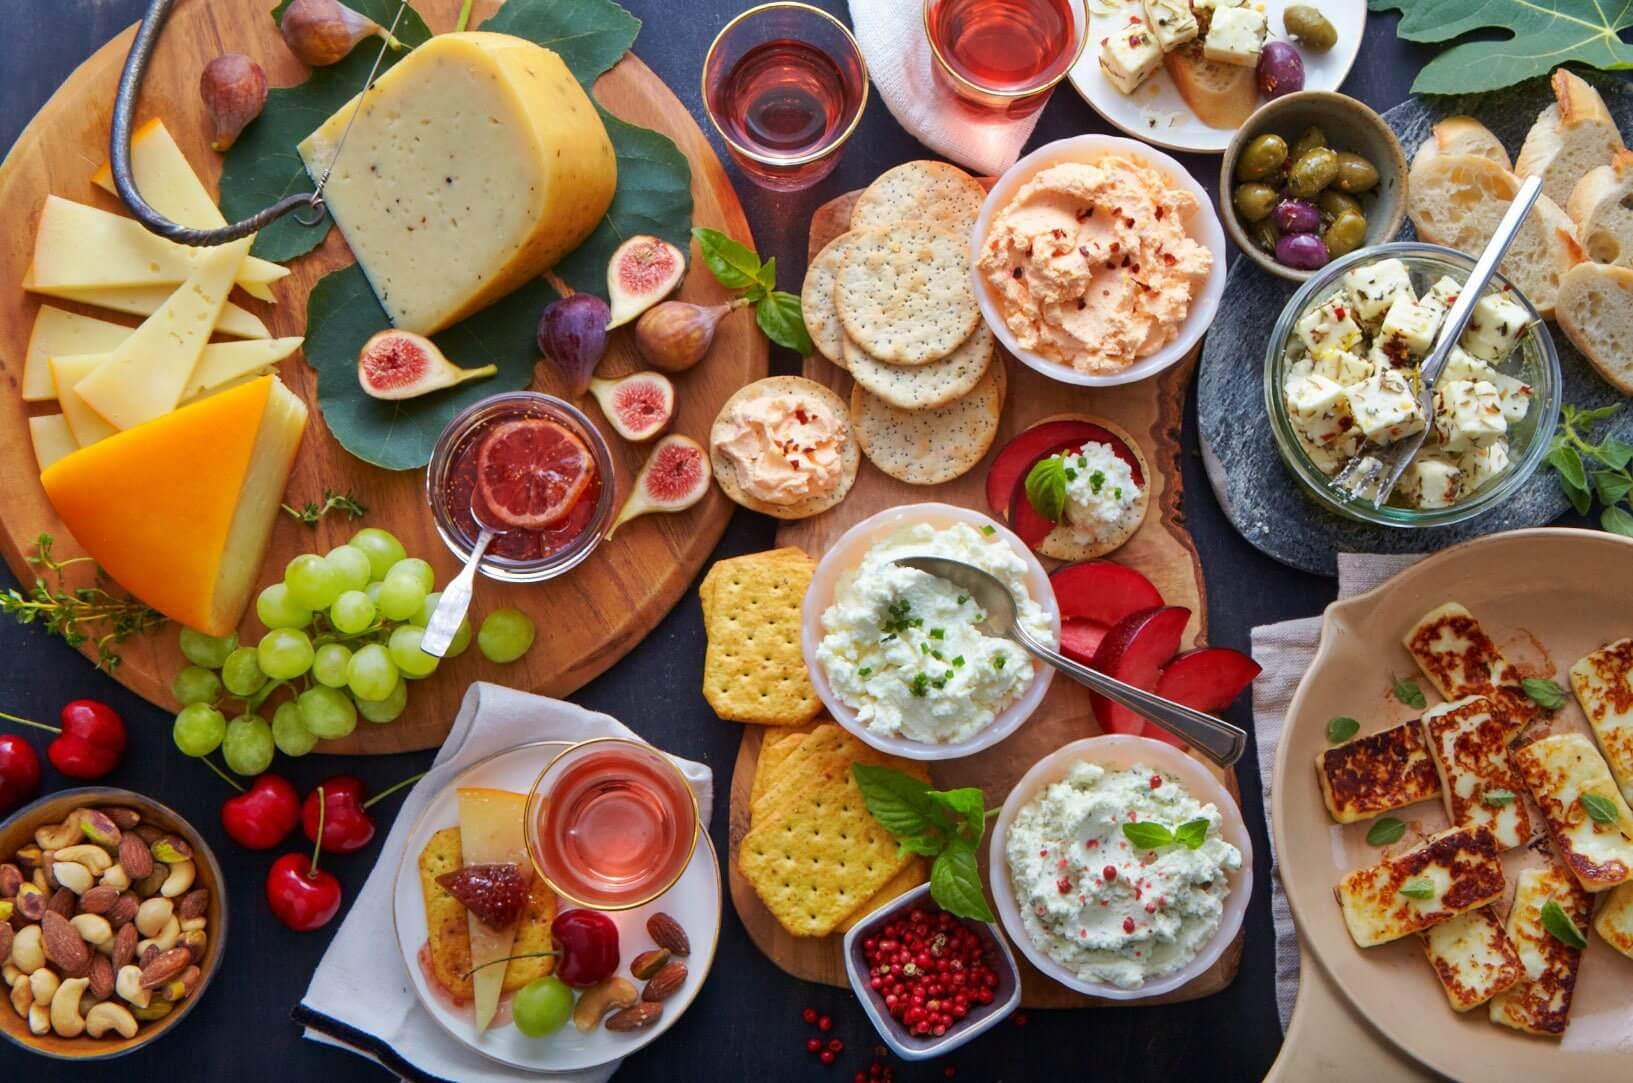 A gorgeous bacchanalian spread of Dayspring Dairy cheeses, figs, cherries, grapes, olives, nuts, bread and crackers and wine | Image: Dayspring Dairy